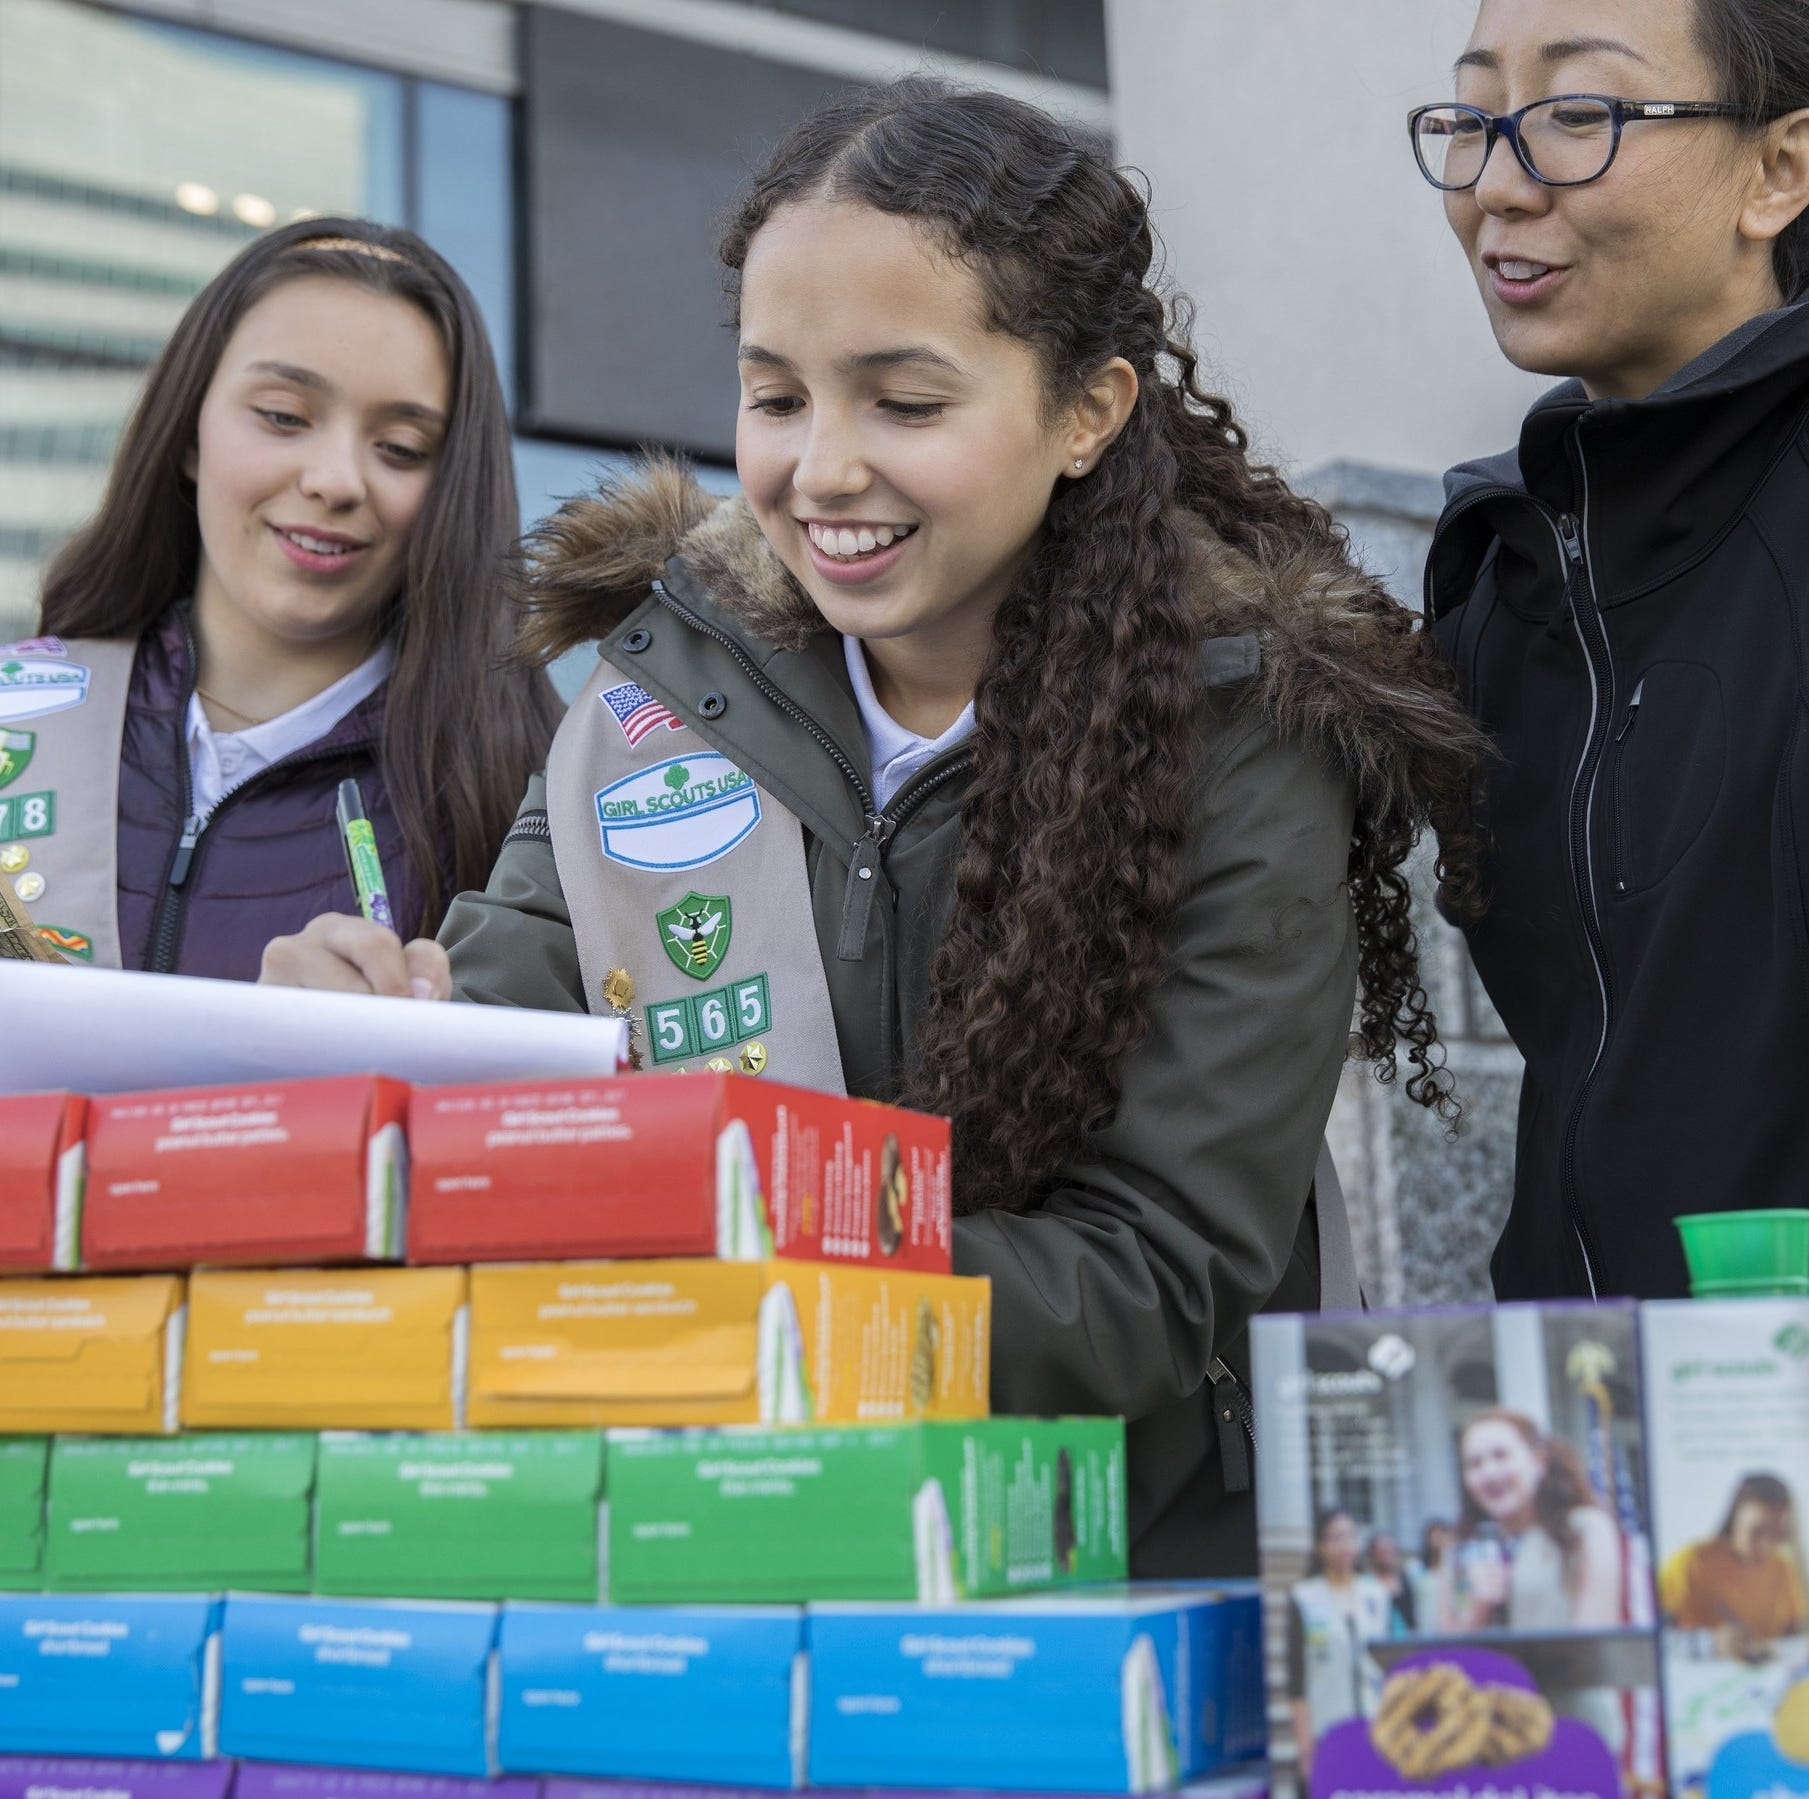 This is the new gluten-free cookie that Girl Scouts will be selling